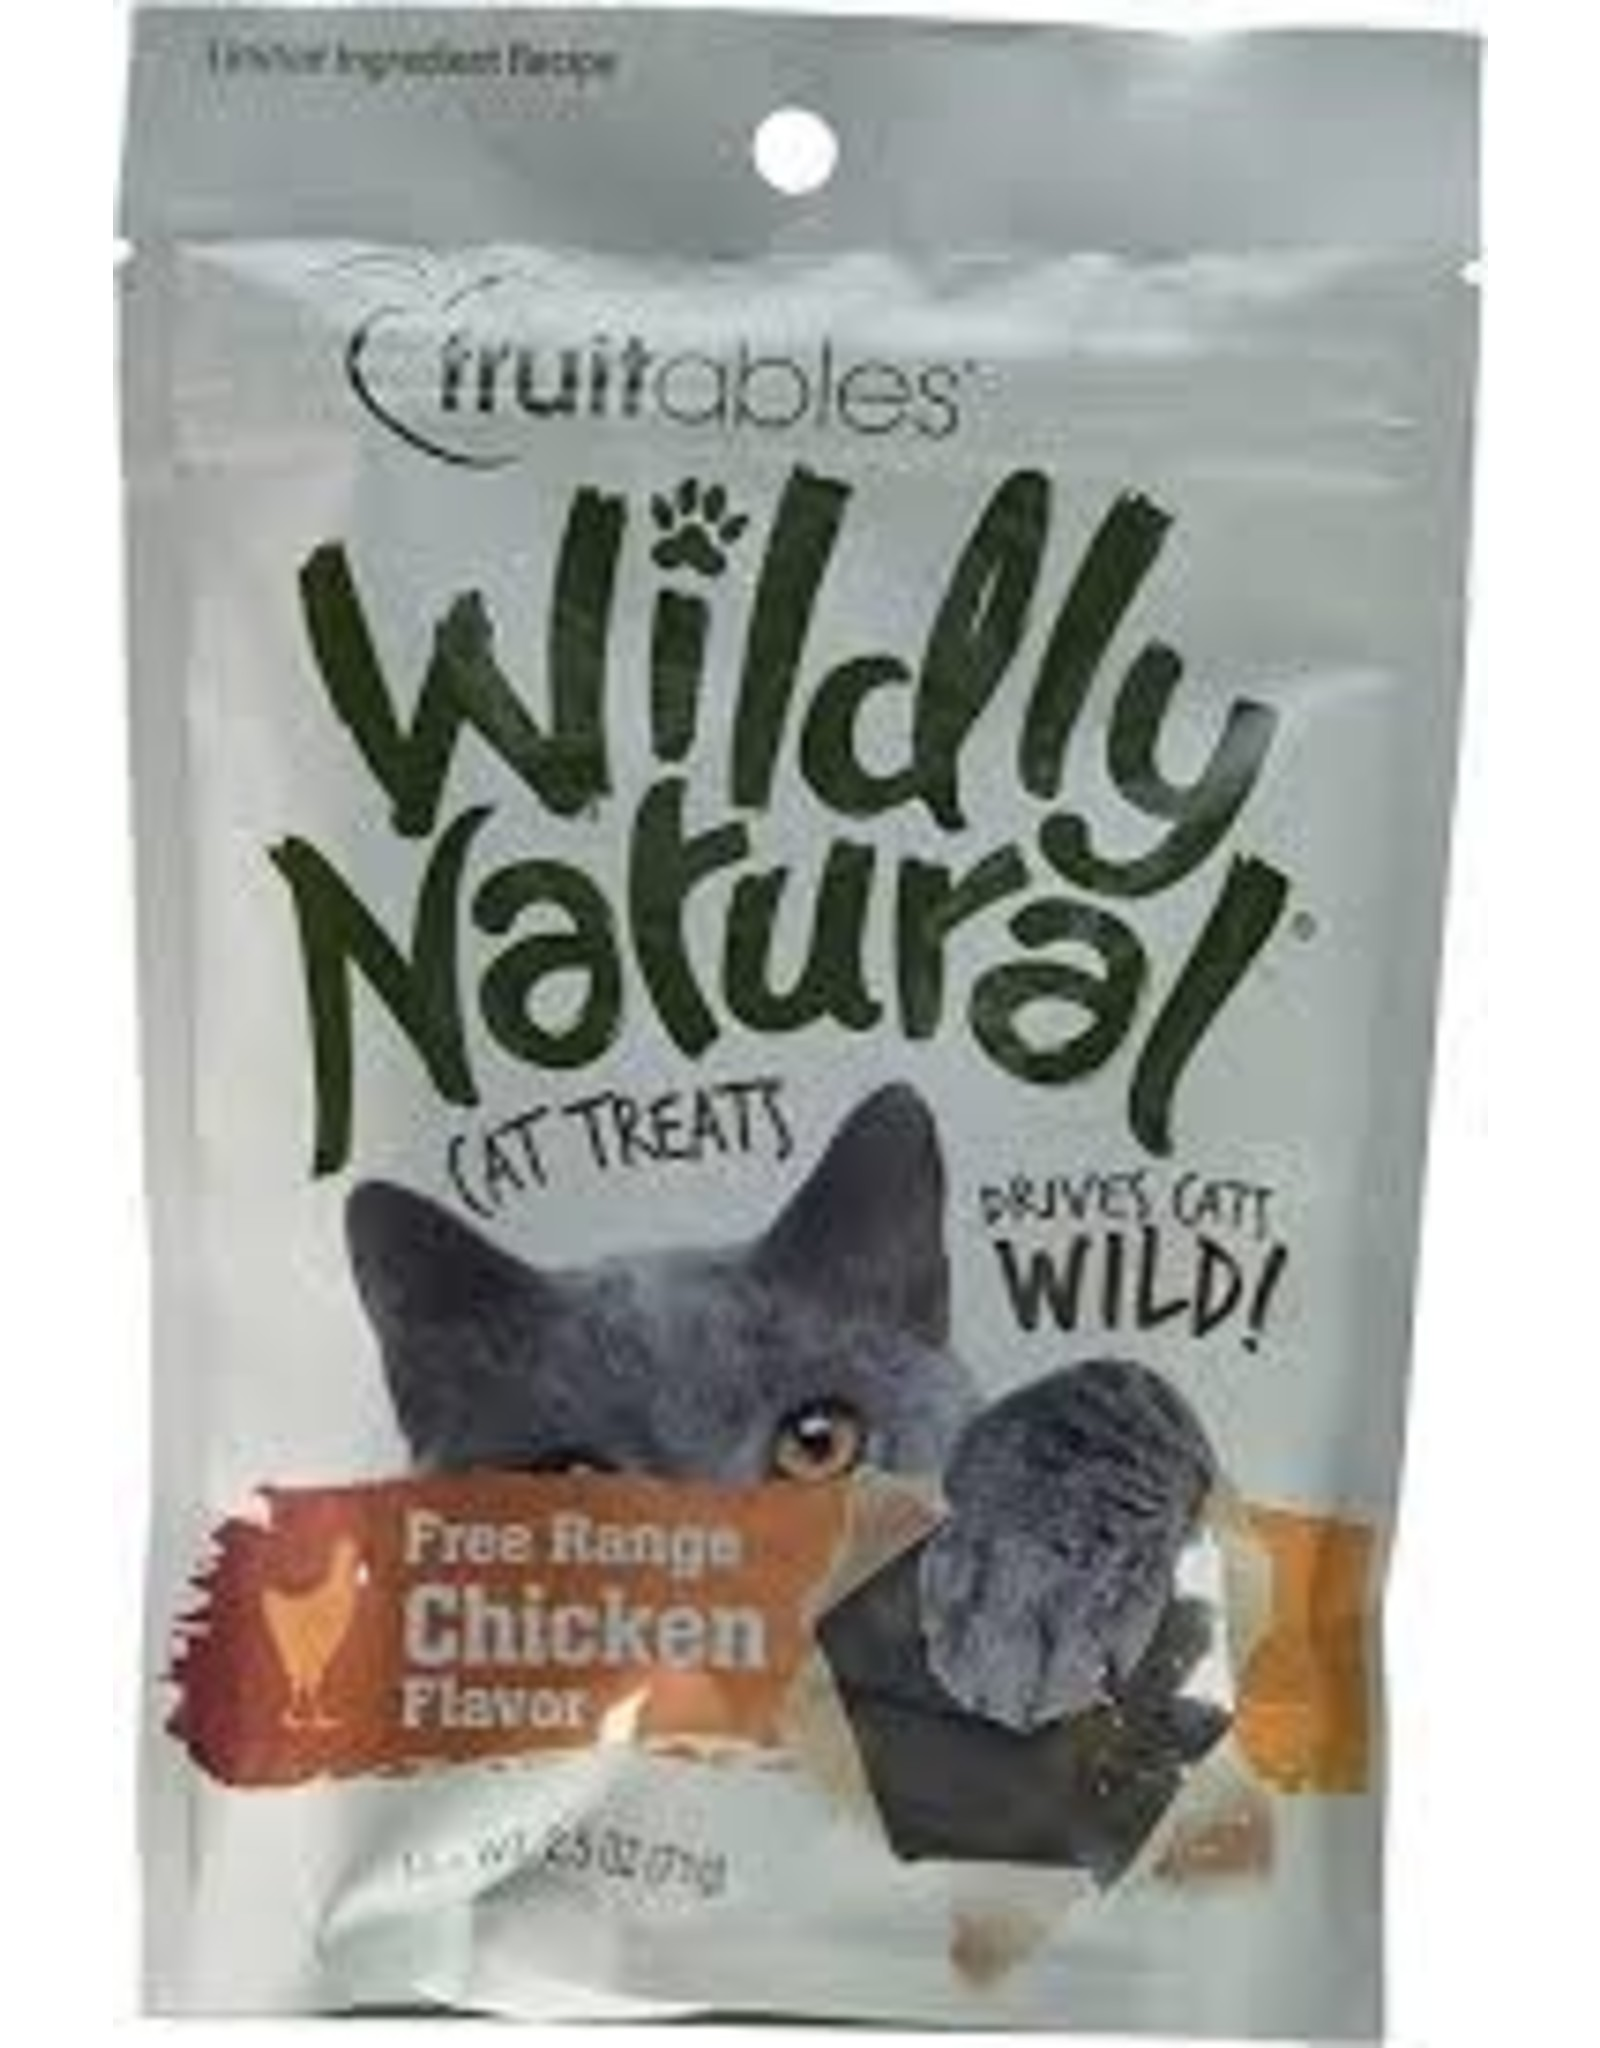 Wildly Natural Wildly Natural - Fruitables Cat Treats Free Range Chicken 71g